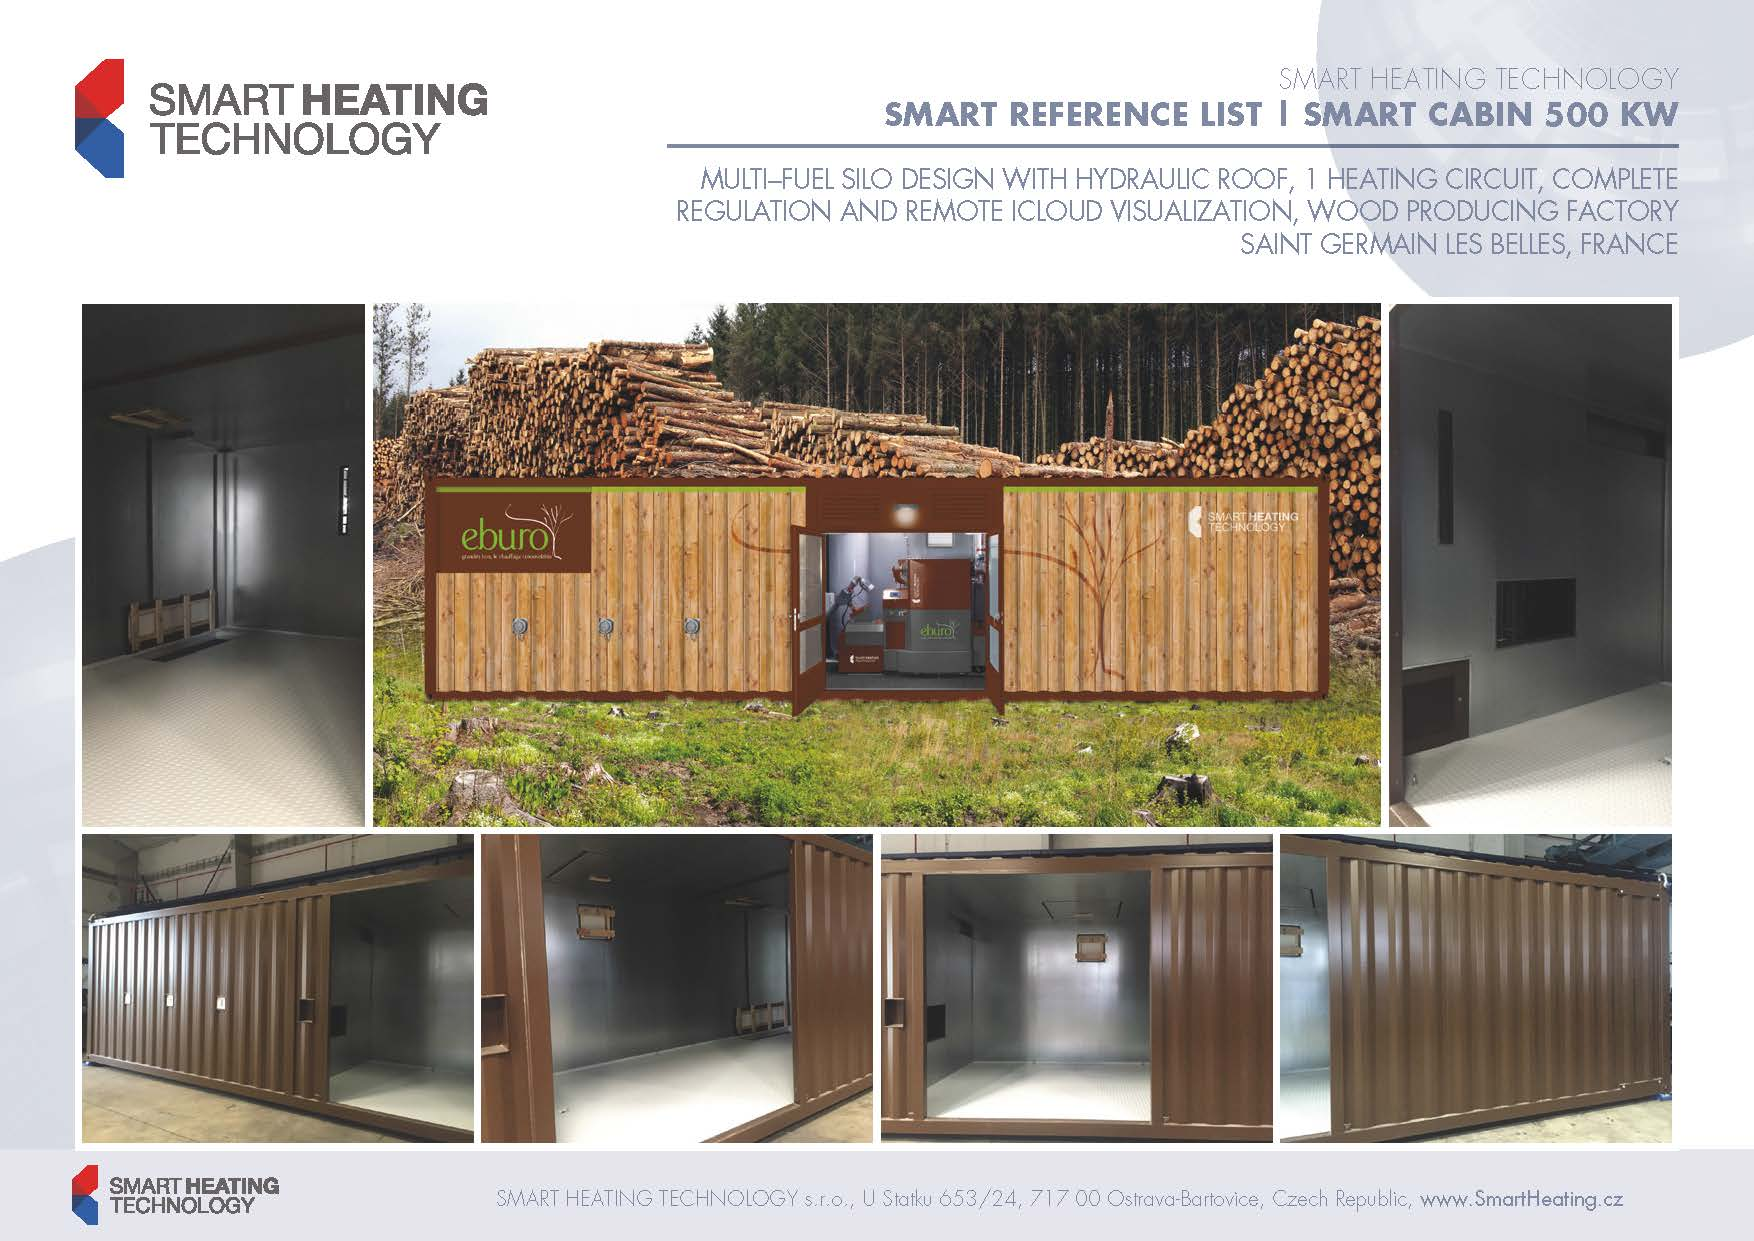 sht-smart-reference-list-smart-eburo-cabin-500kw-final3_stranka_1